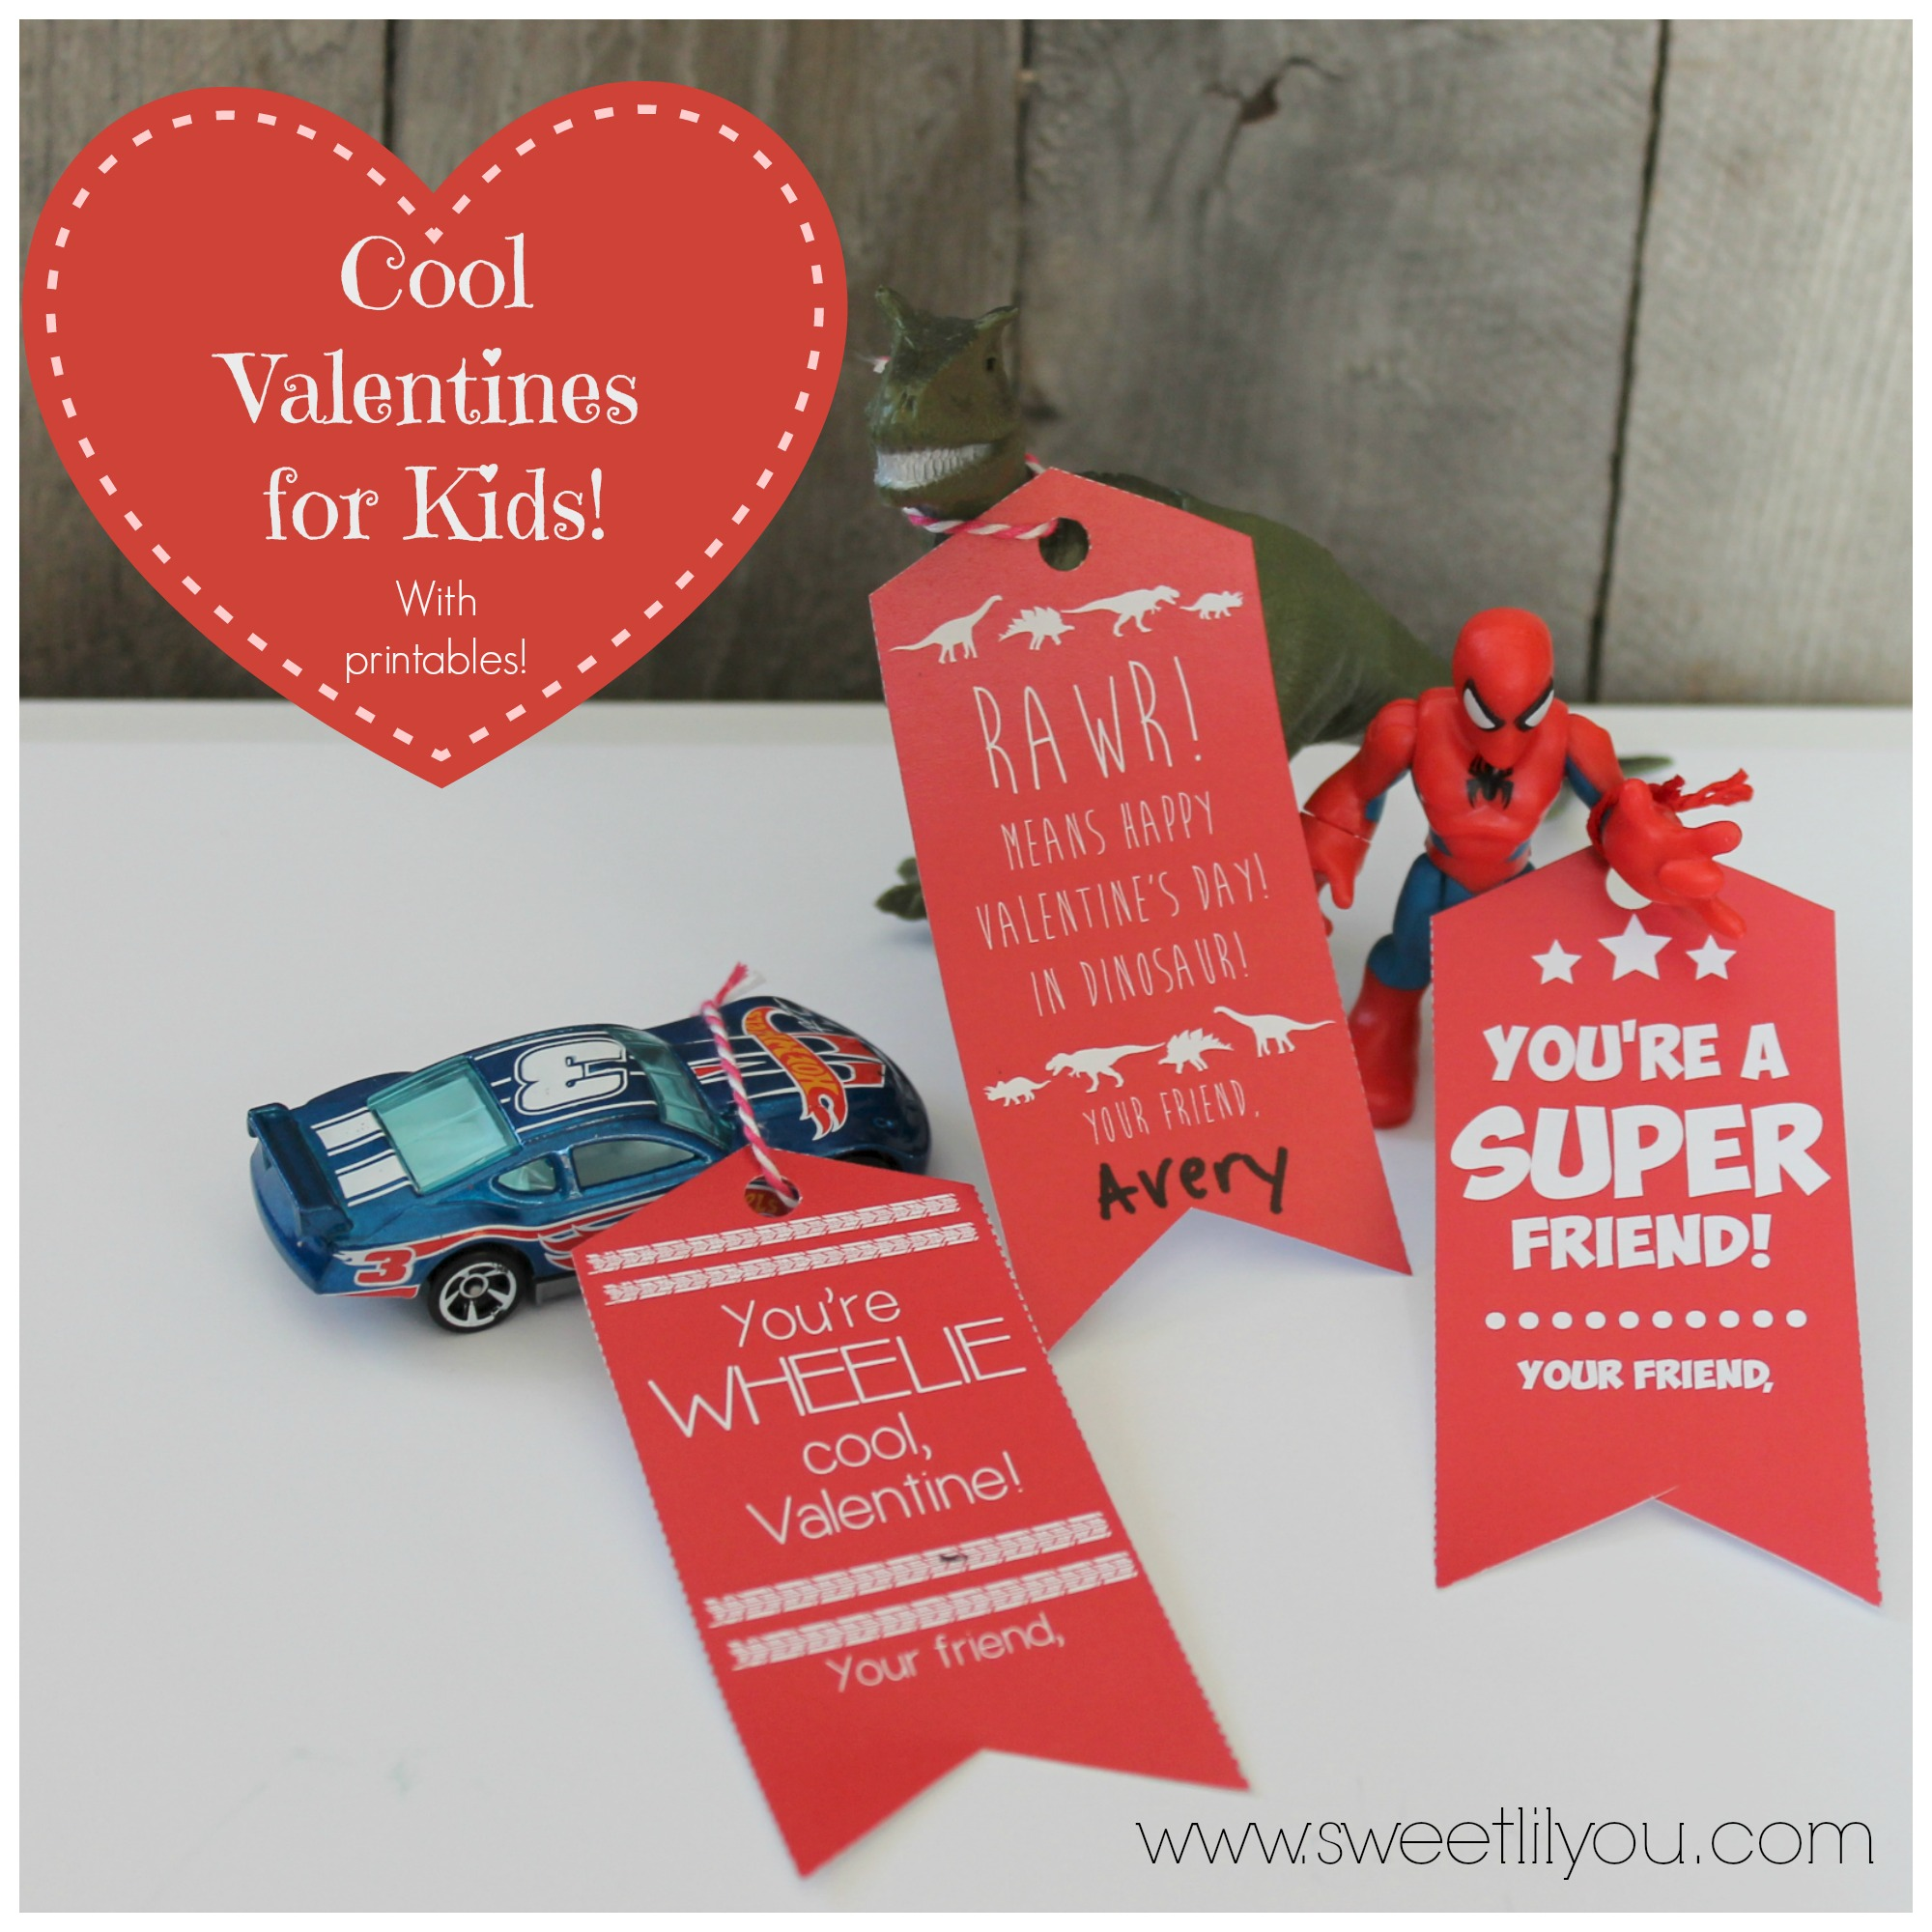 photograph relating to Printable Valentines for Kids named Neat Valentines for Boys Gals! Free of charge Printable Tags